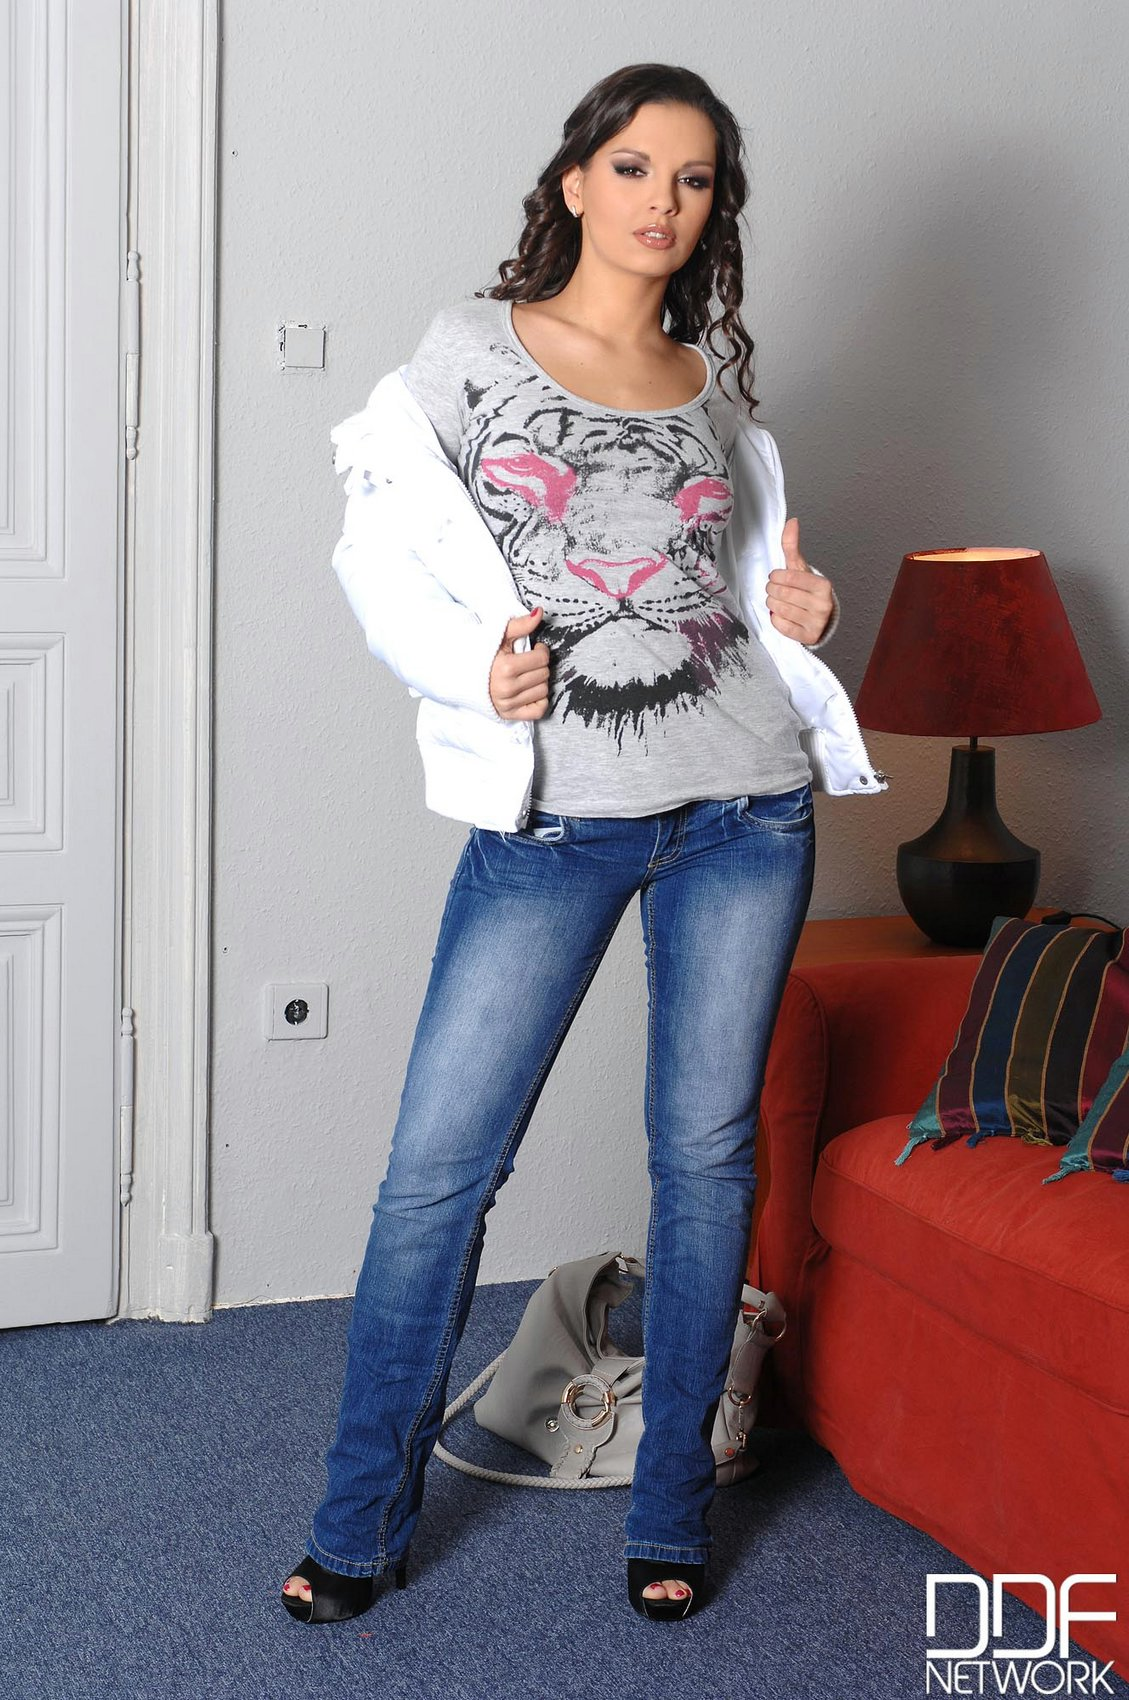 eve angel in sexy jeans posing and playing with a dildo